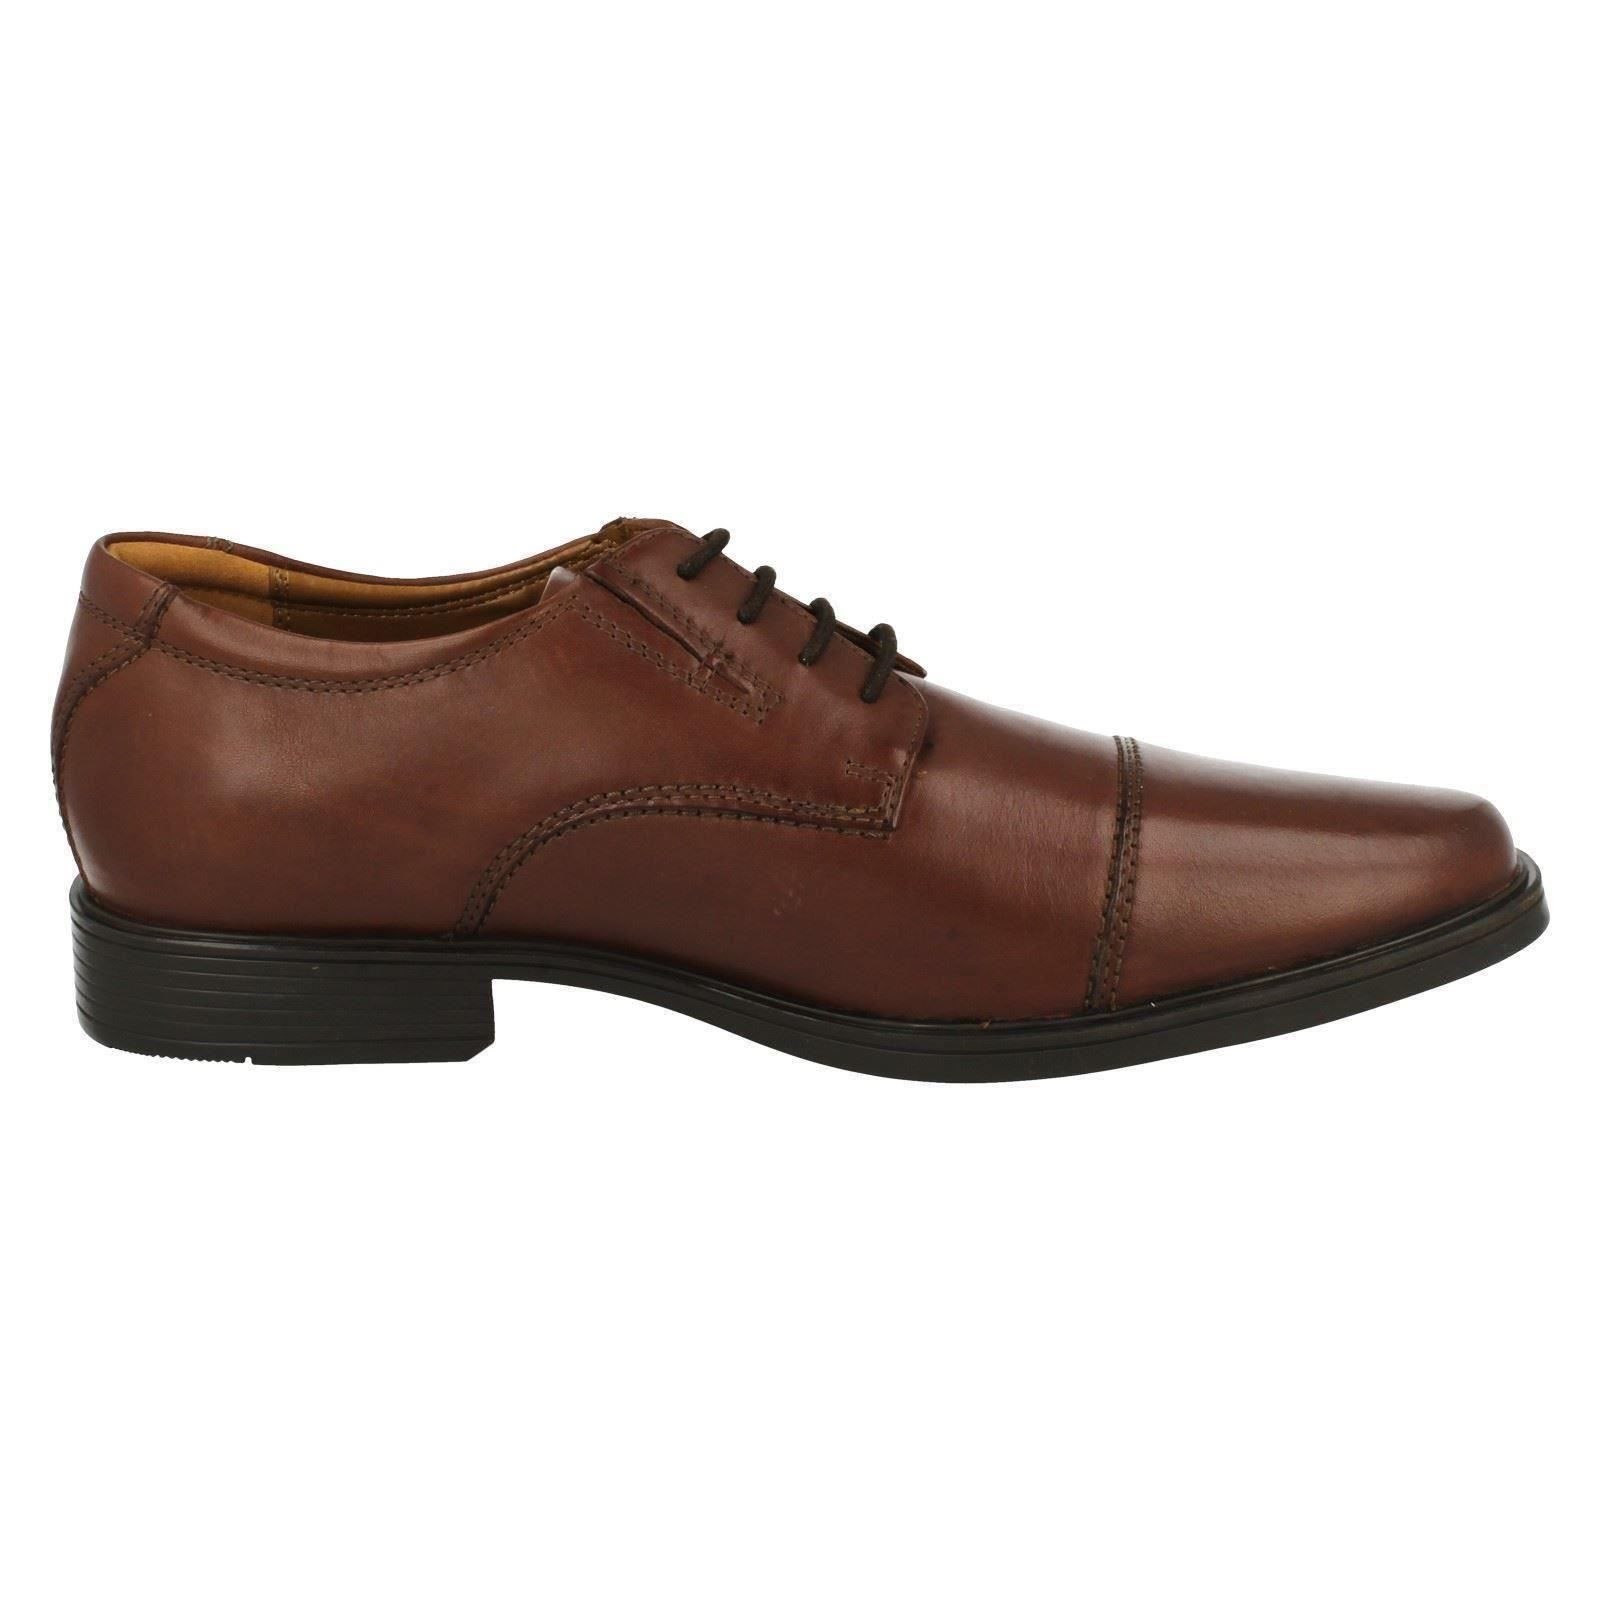 Mens-Clarks-Formal-Lace-Up-Shoes-Tilden-Cap thumbnail 15